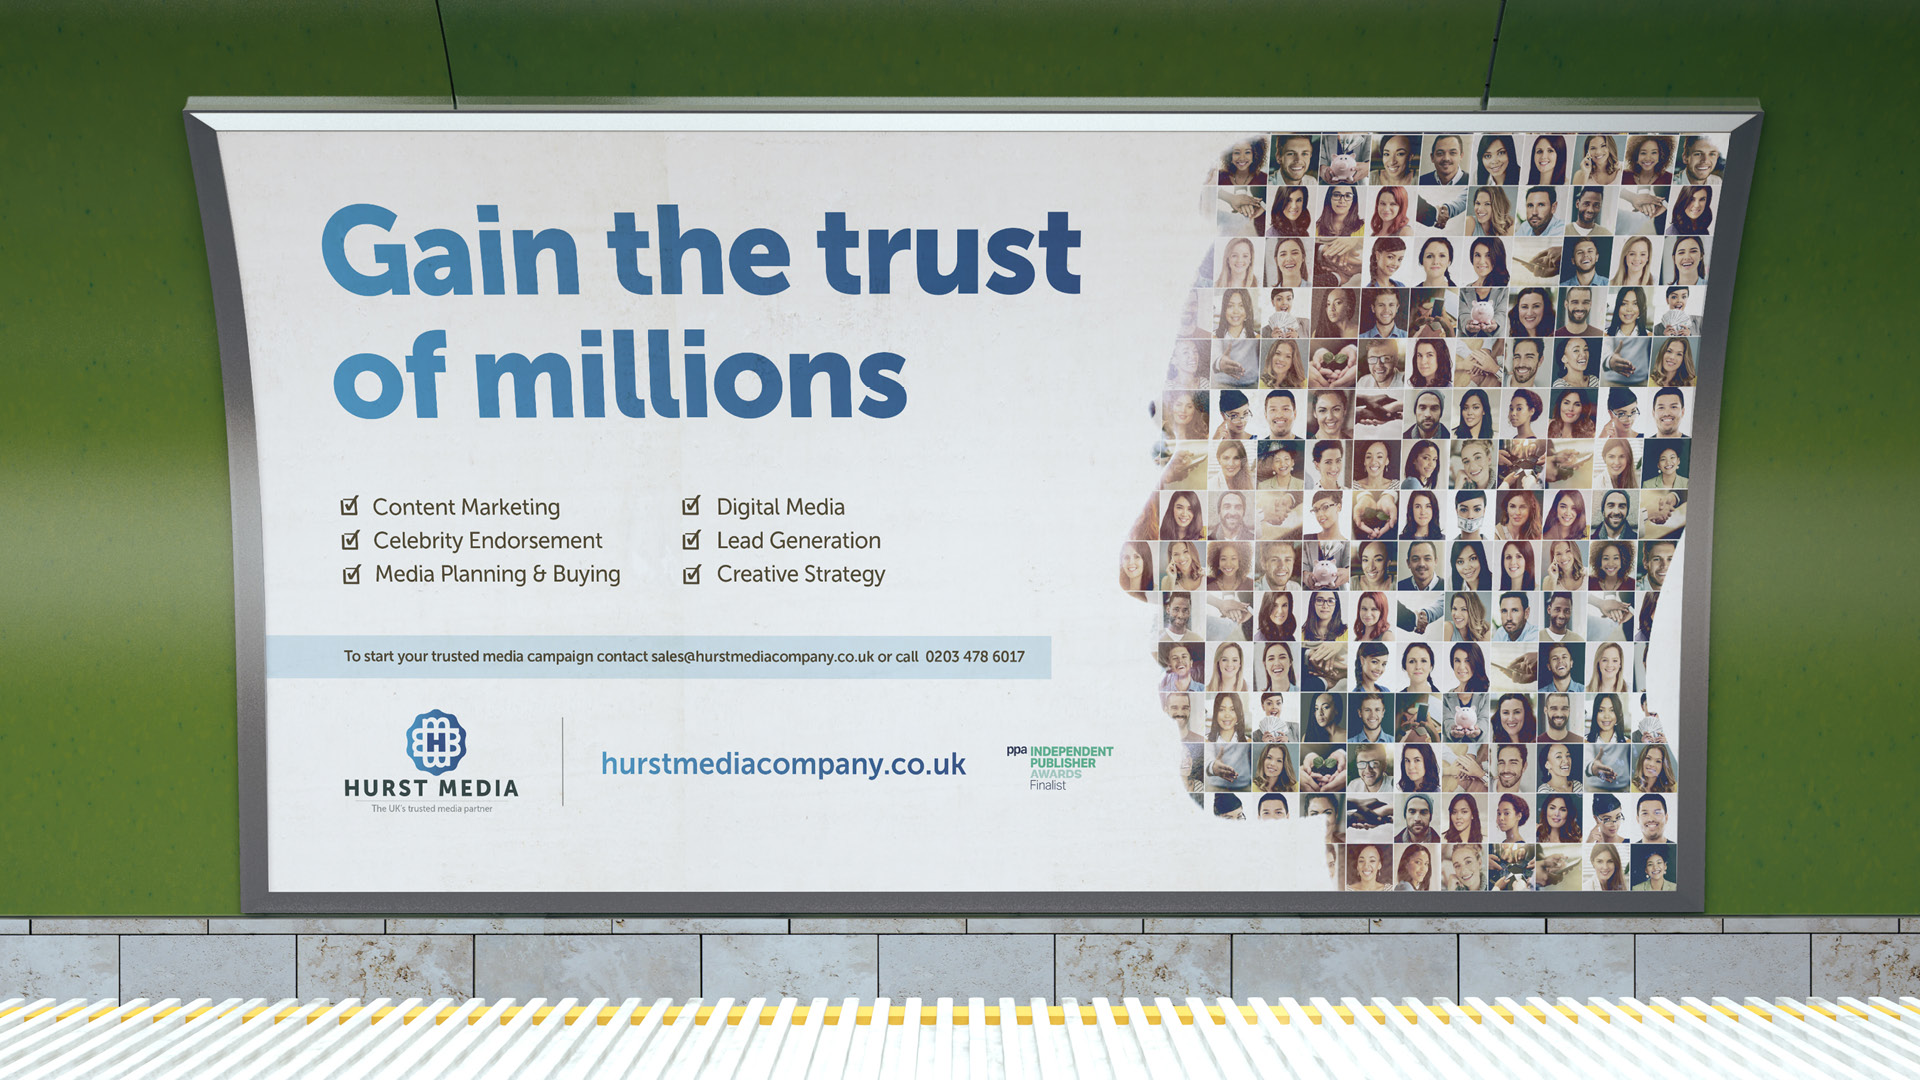 First Outdoor Advertising Campaign Promotes Trusted Media